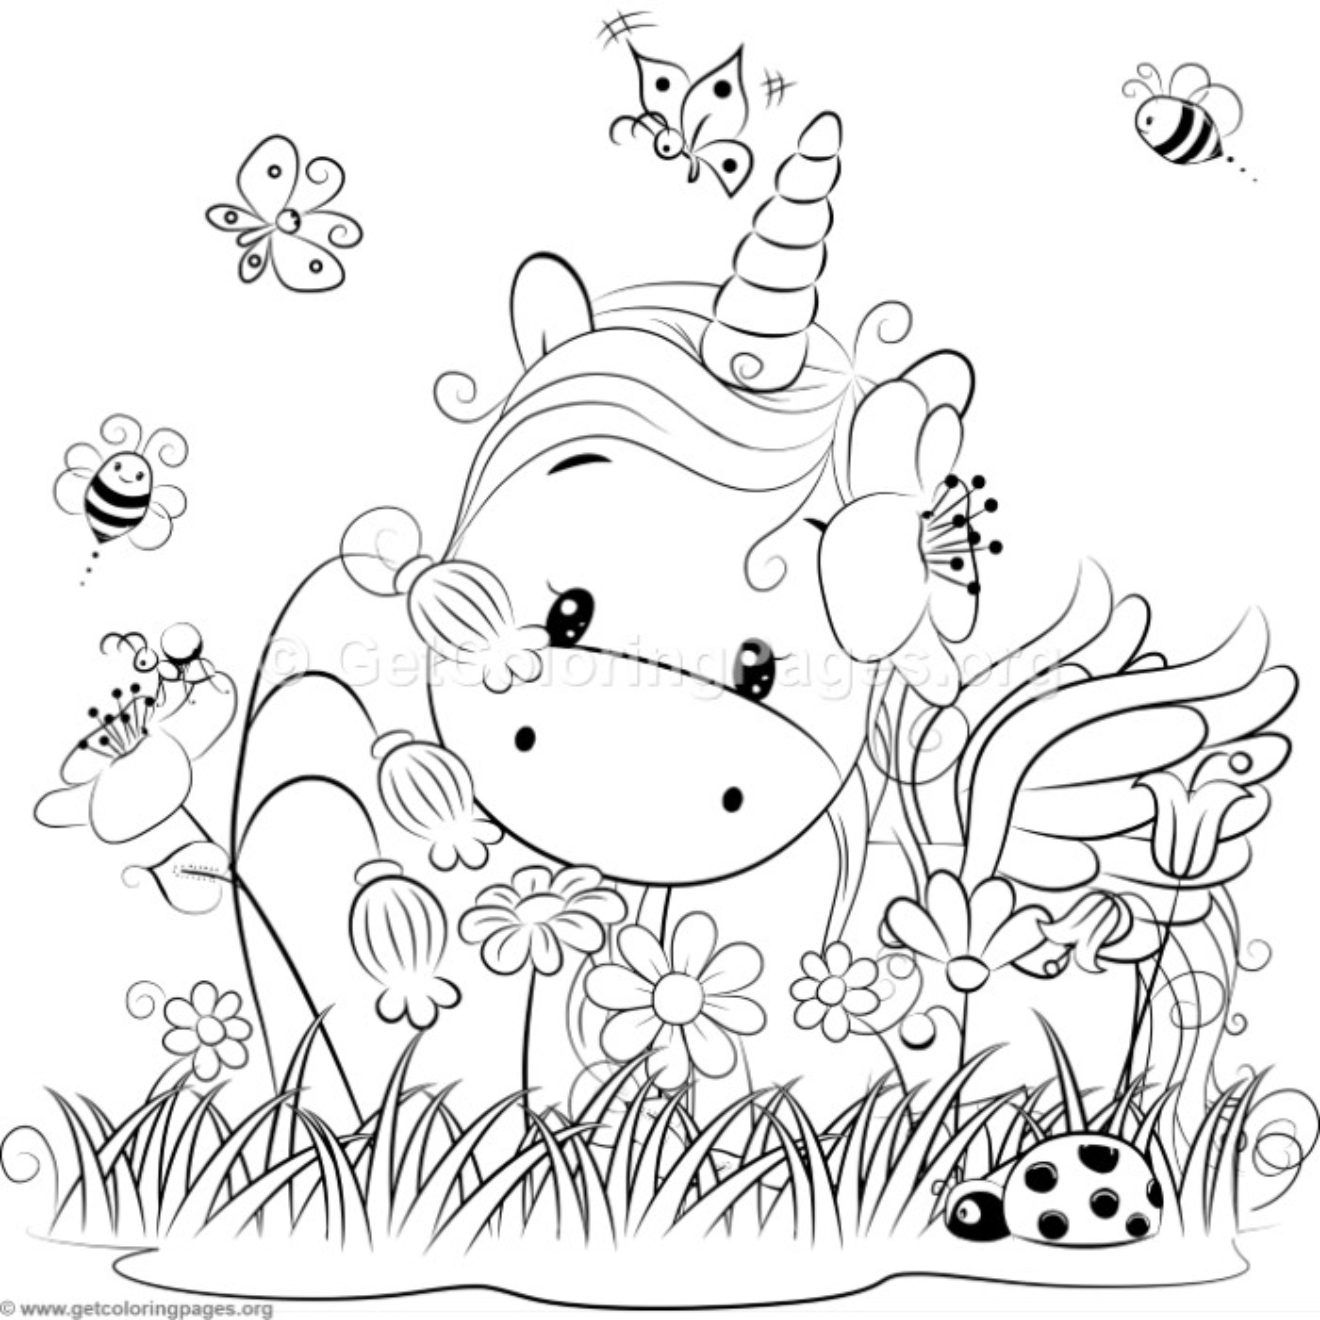 Cute Unicorn 24 Coloring Pages – GetColoringPages.org  Unicorn